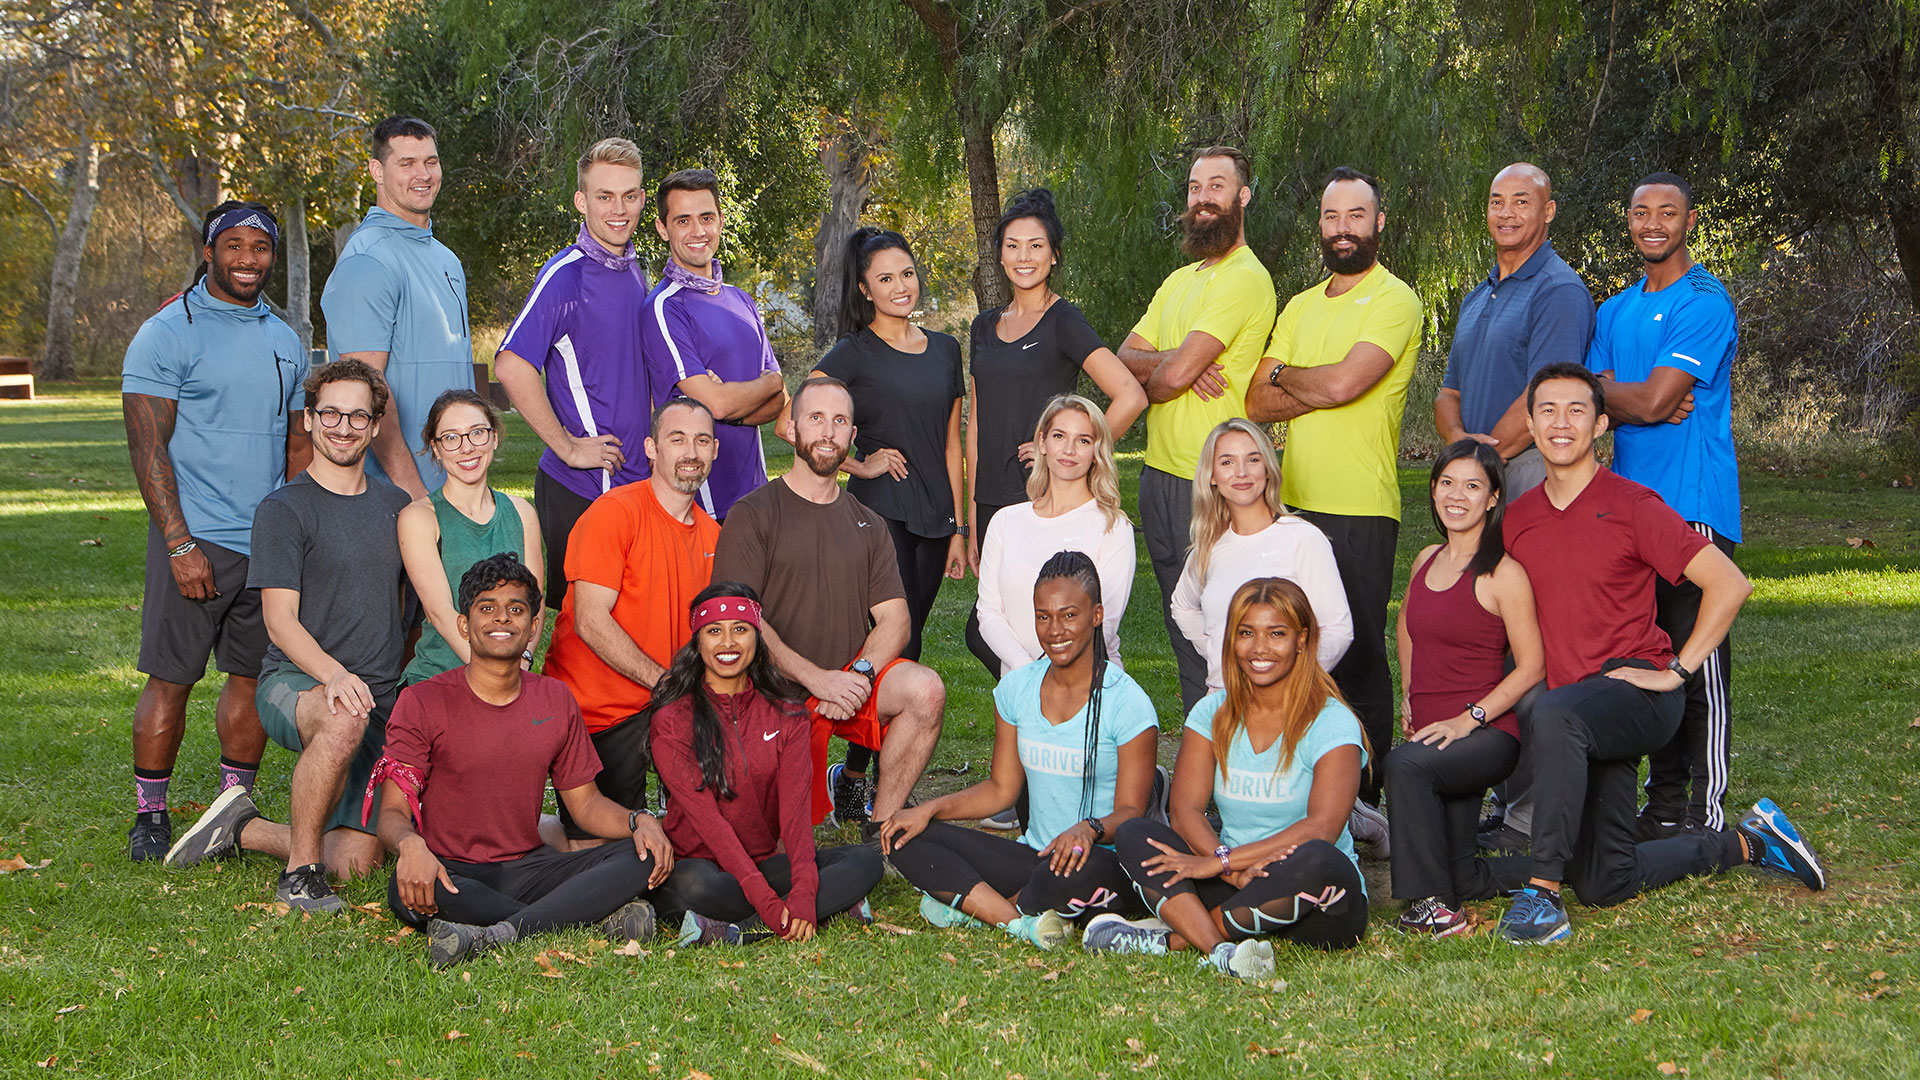 Don't miss the Season 32 premiere of The Amazing Race on Wednesday, Oct. 14 at 9/8c.